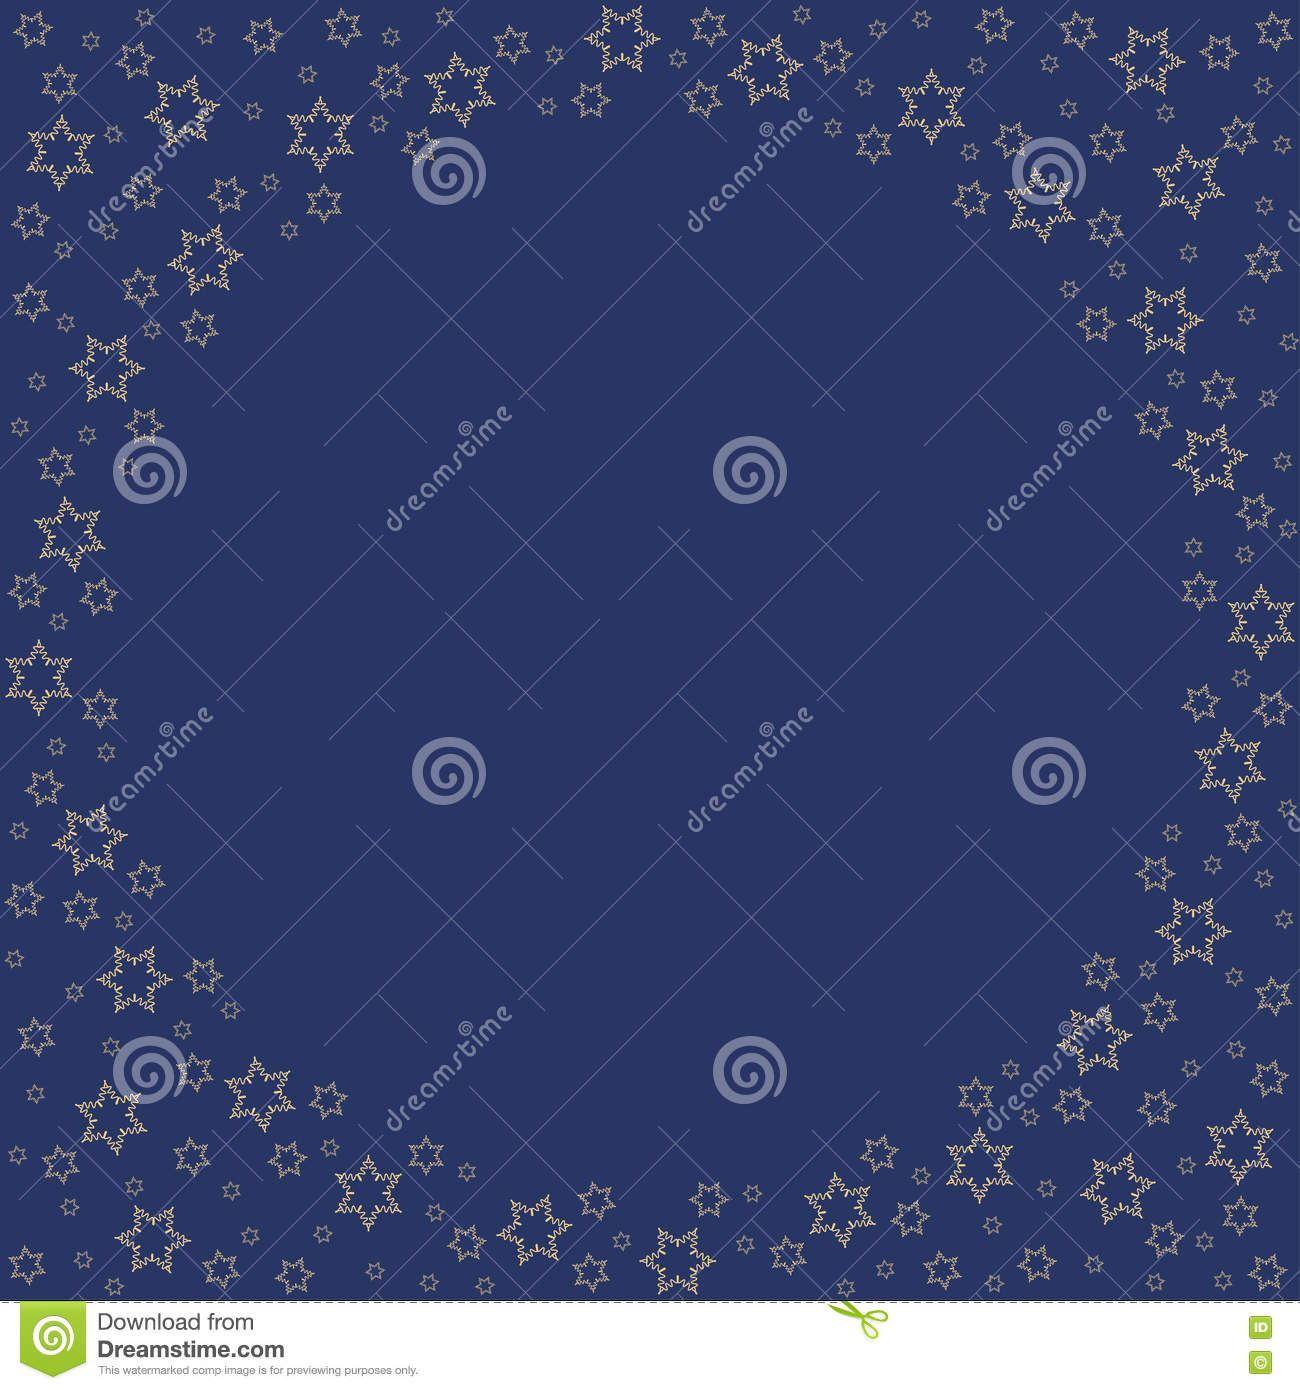 repeating golden stars silhouette pattern on the blue background border frame with space for text christmas and happy new year symbol concept vector